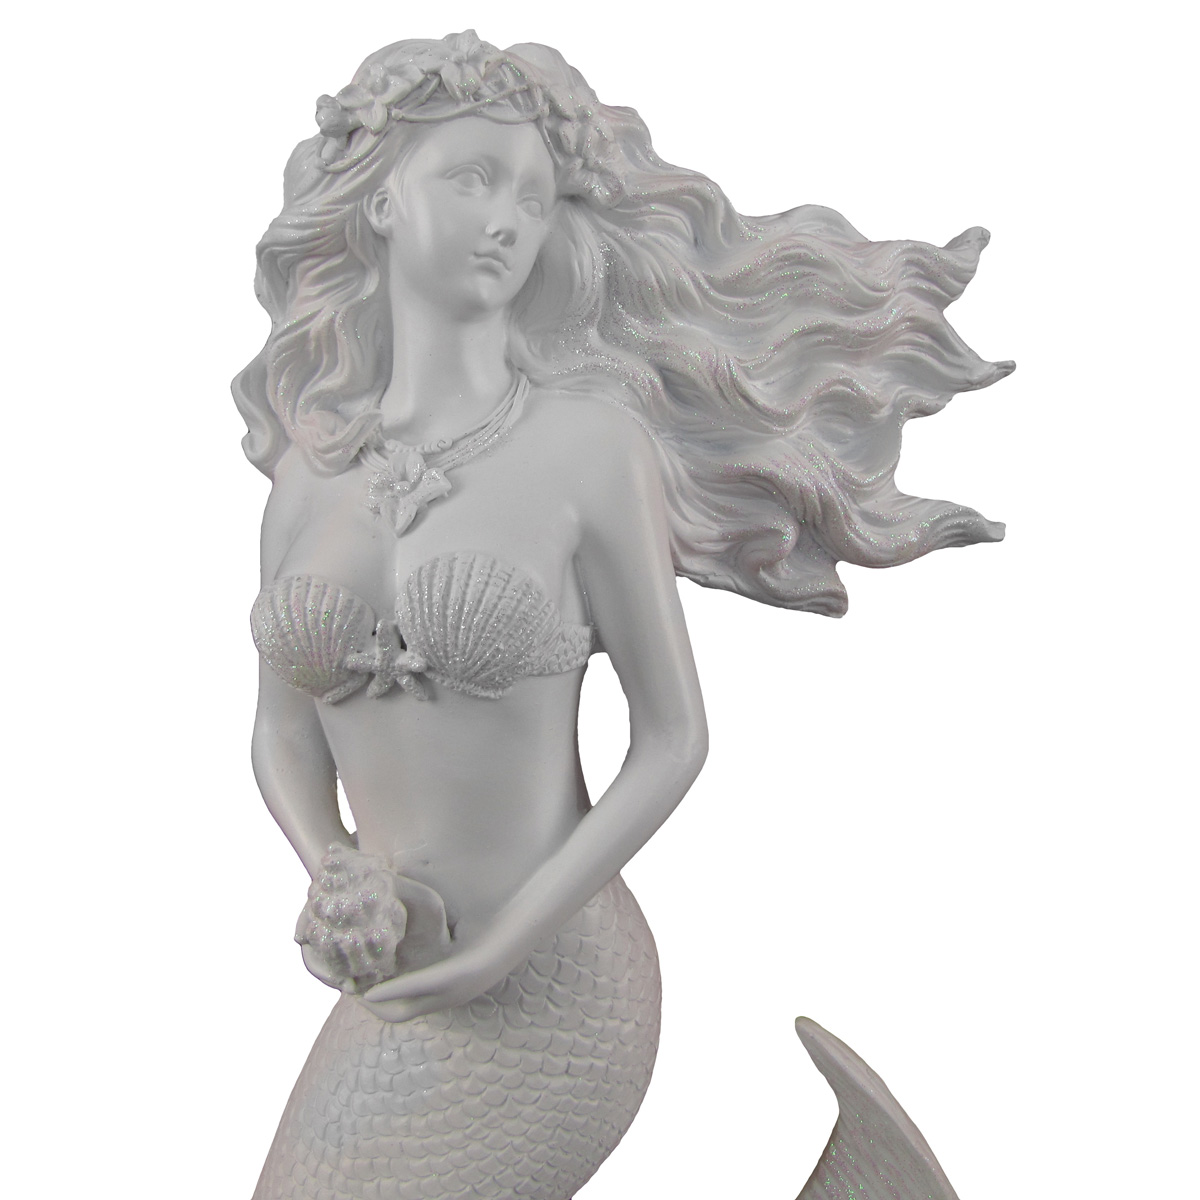 Glittering White Flowing Hair Mermaid Sculpture Wall Art Plaque Beach Home Decor